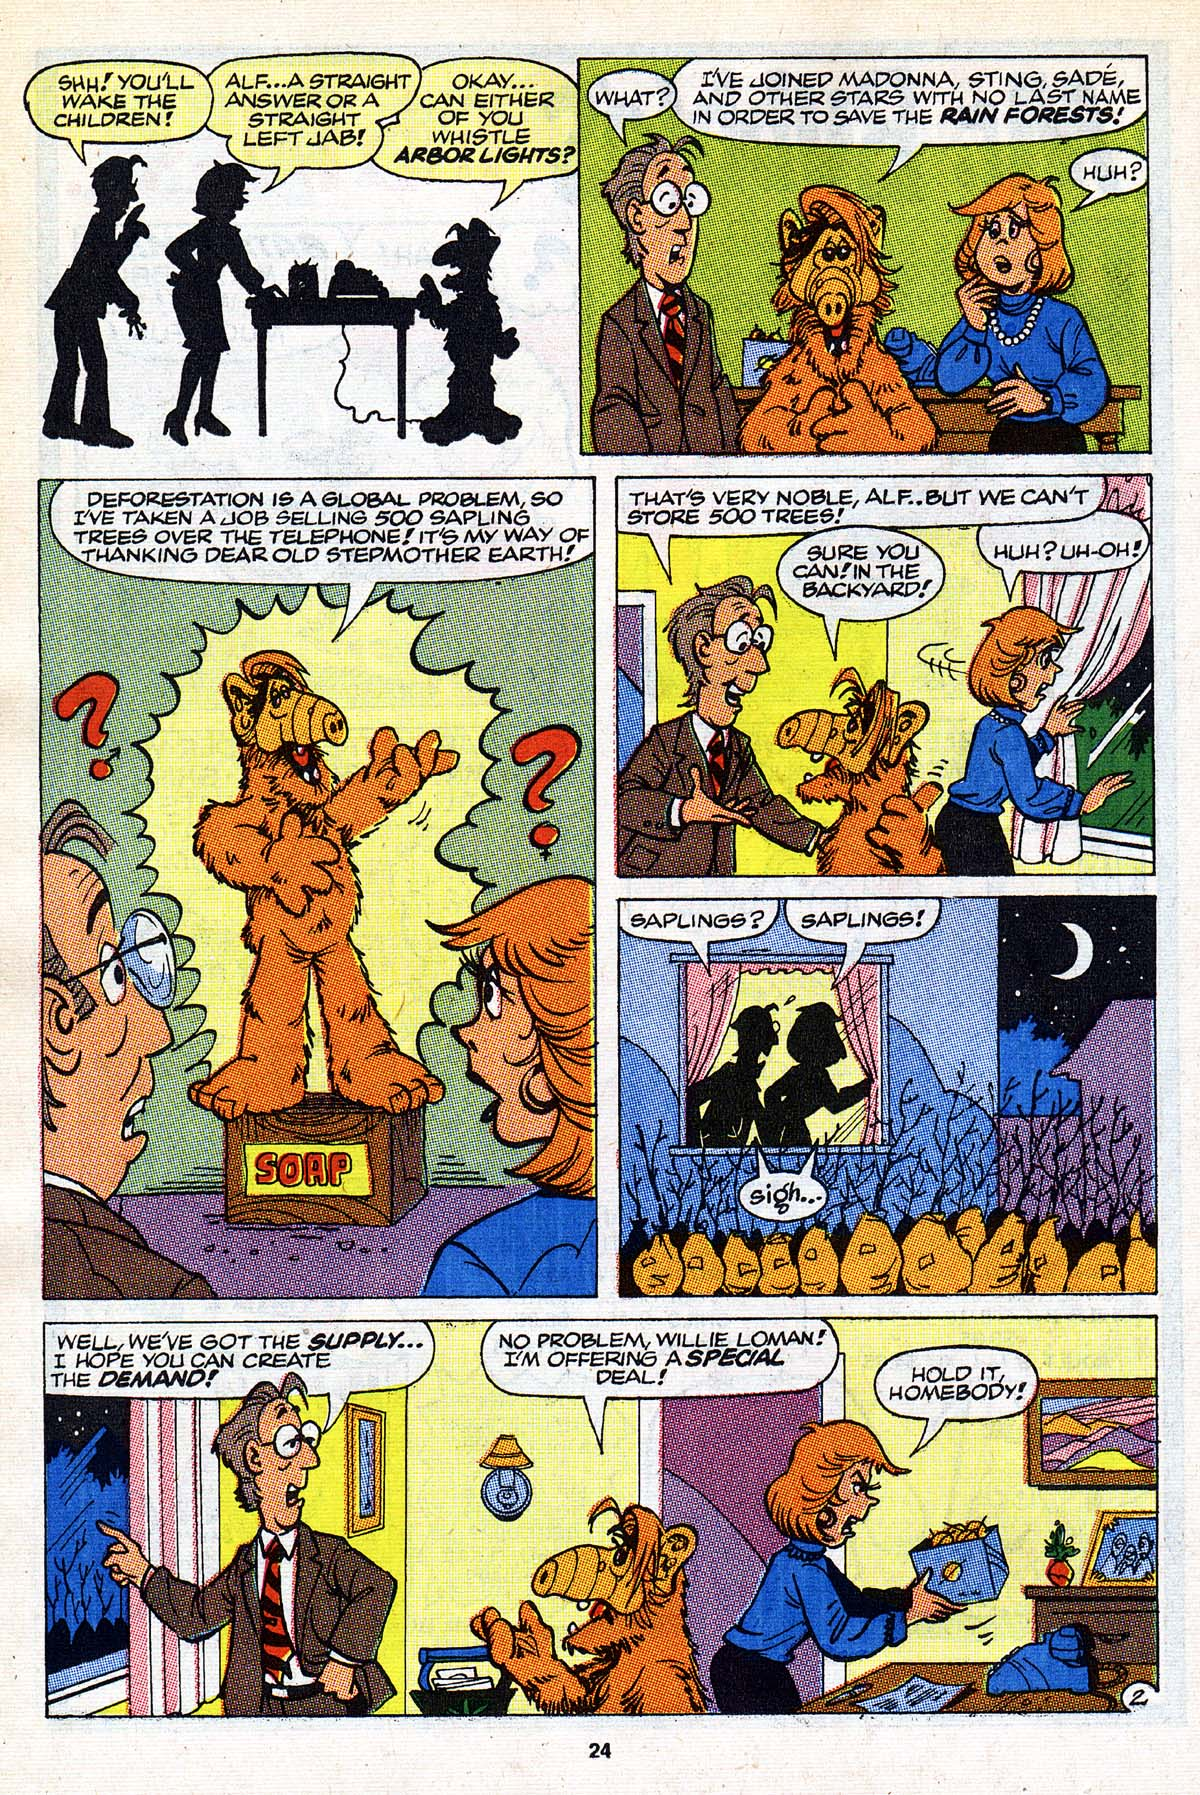 Read online ALF comic -  Issue #26 - 19